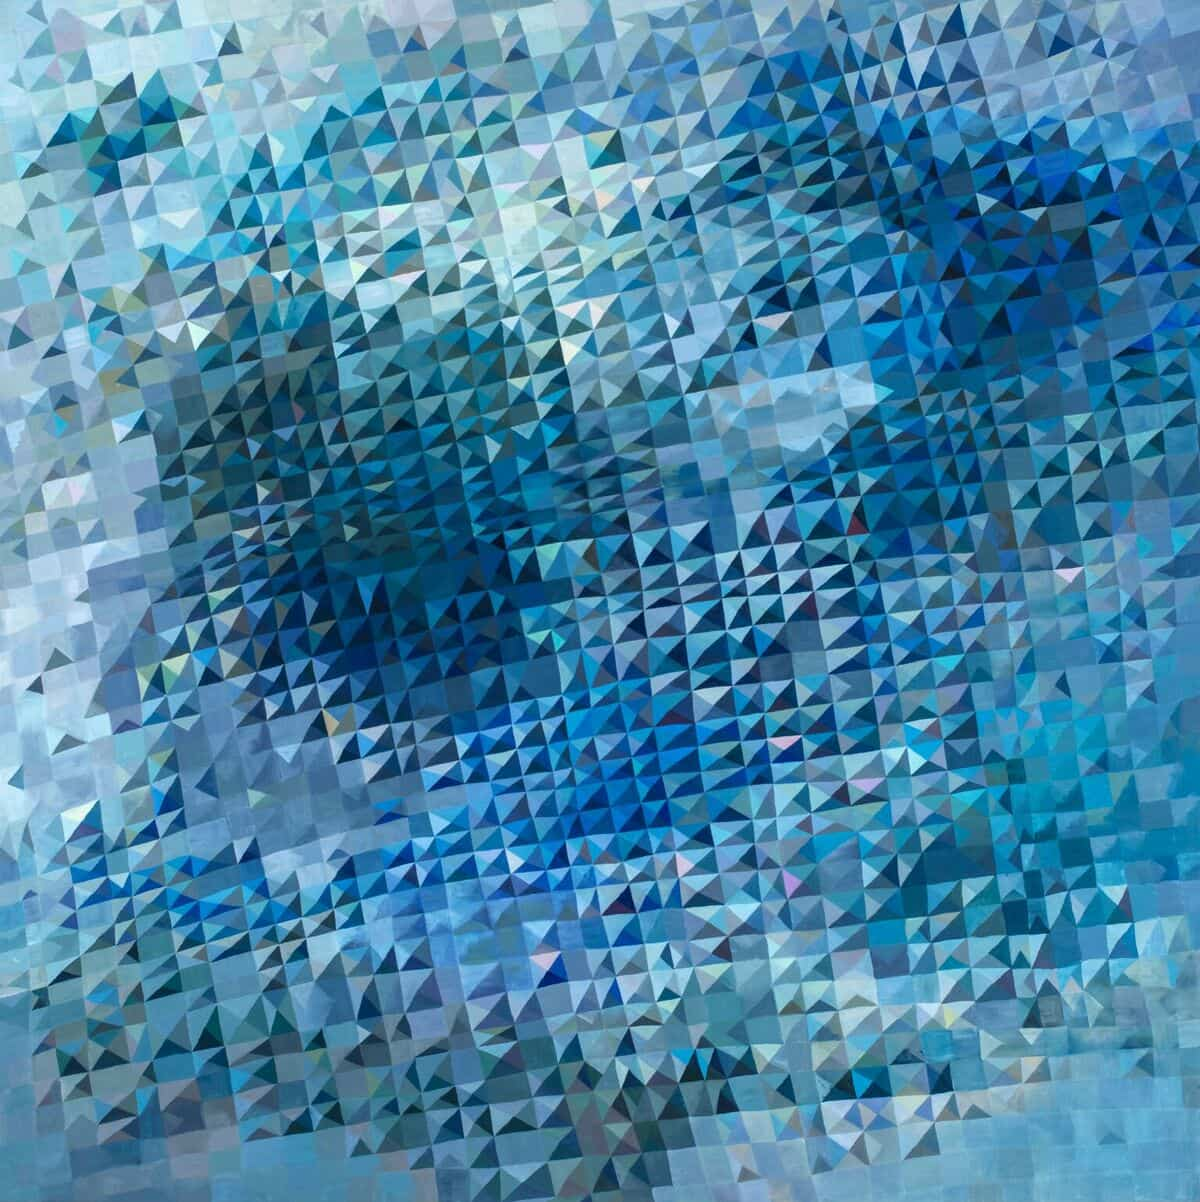 Lyndal Hargrave, Blue Kyanite, oil on linen, 122x122cm